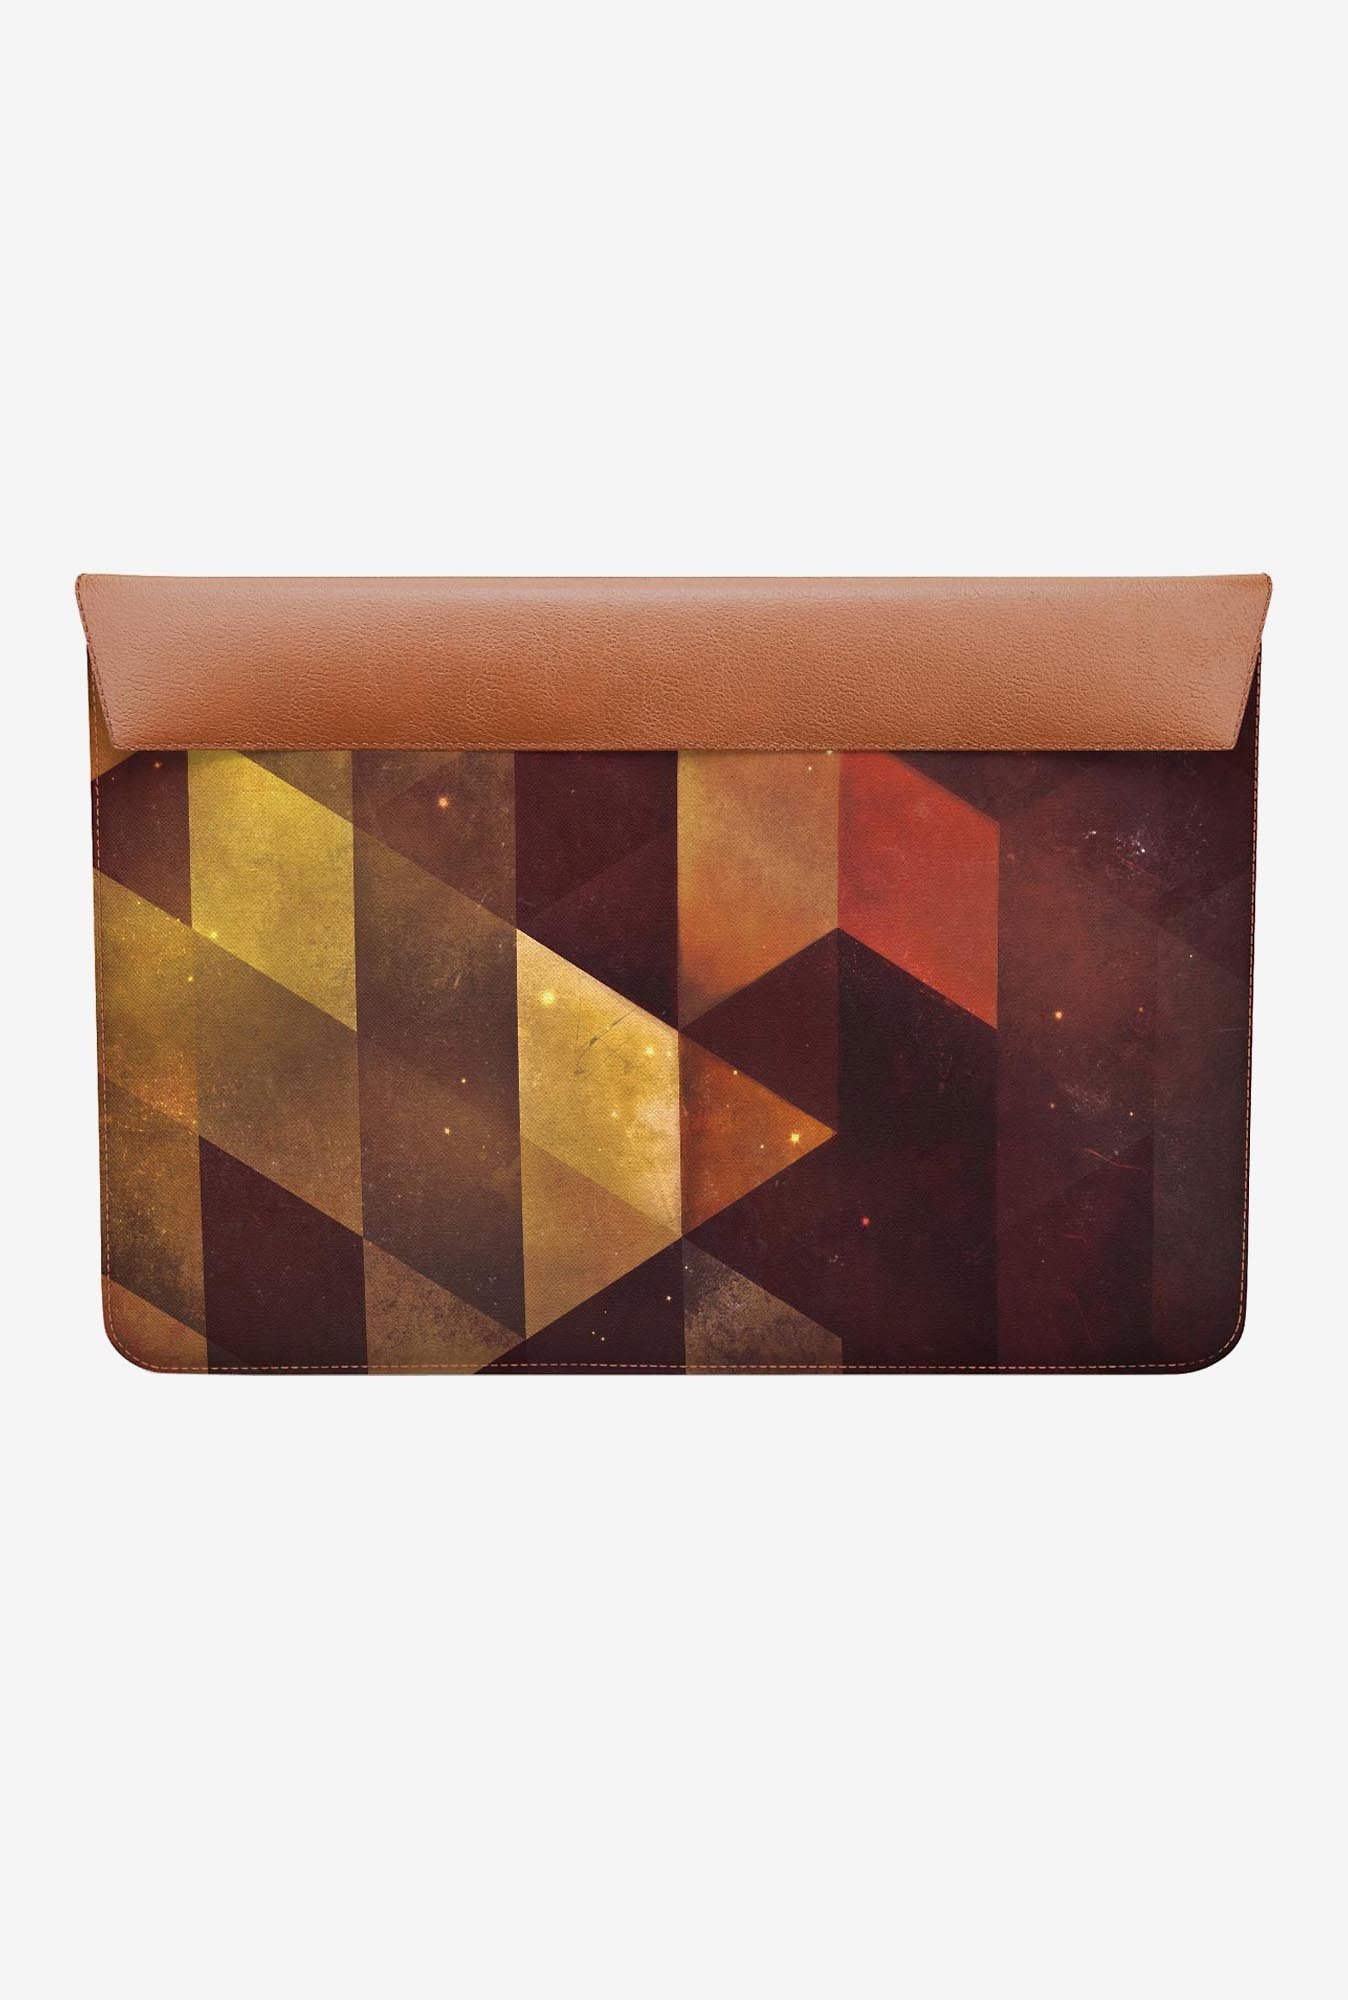 "DailyObjects Slyypy Byr Ryt Macbook Air 11"" Envelope Sleeve"